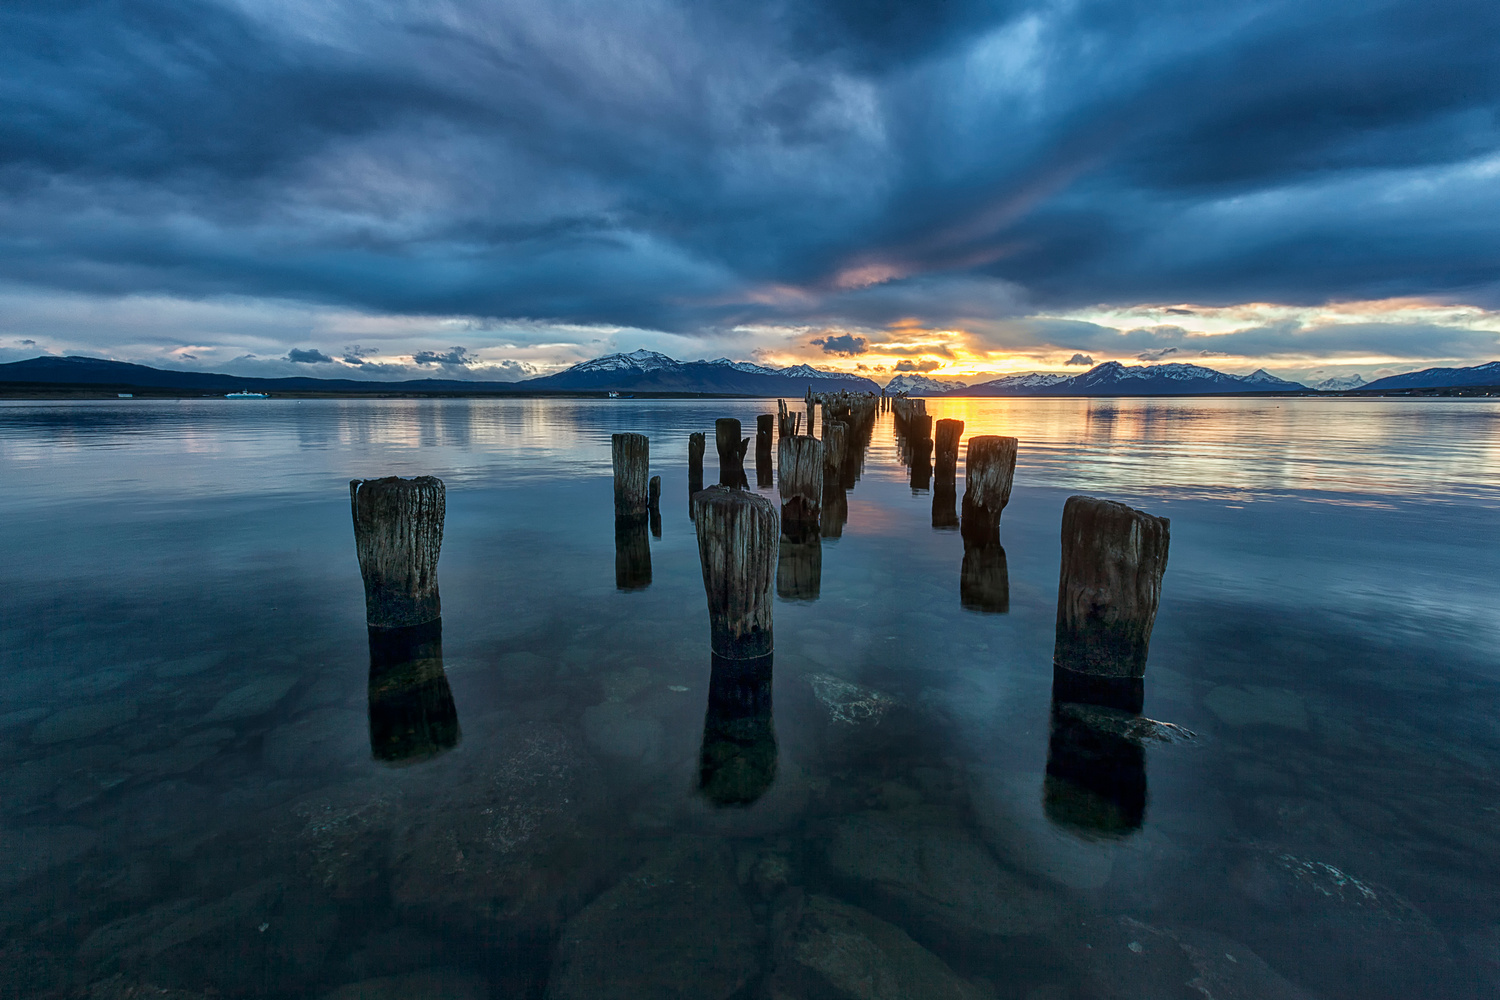 Sunset at Puerto Natales by Andrea Torselli